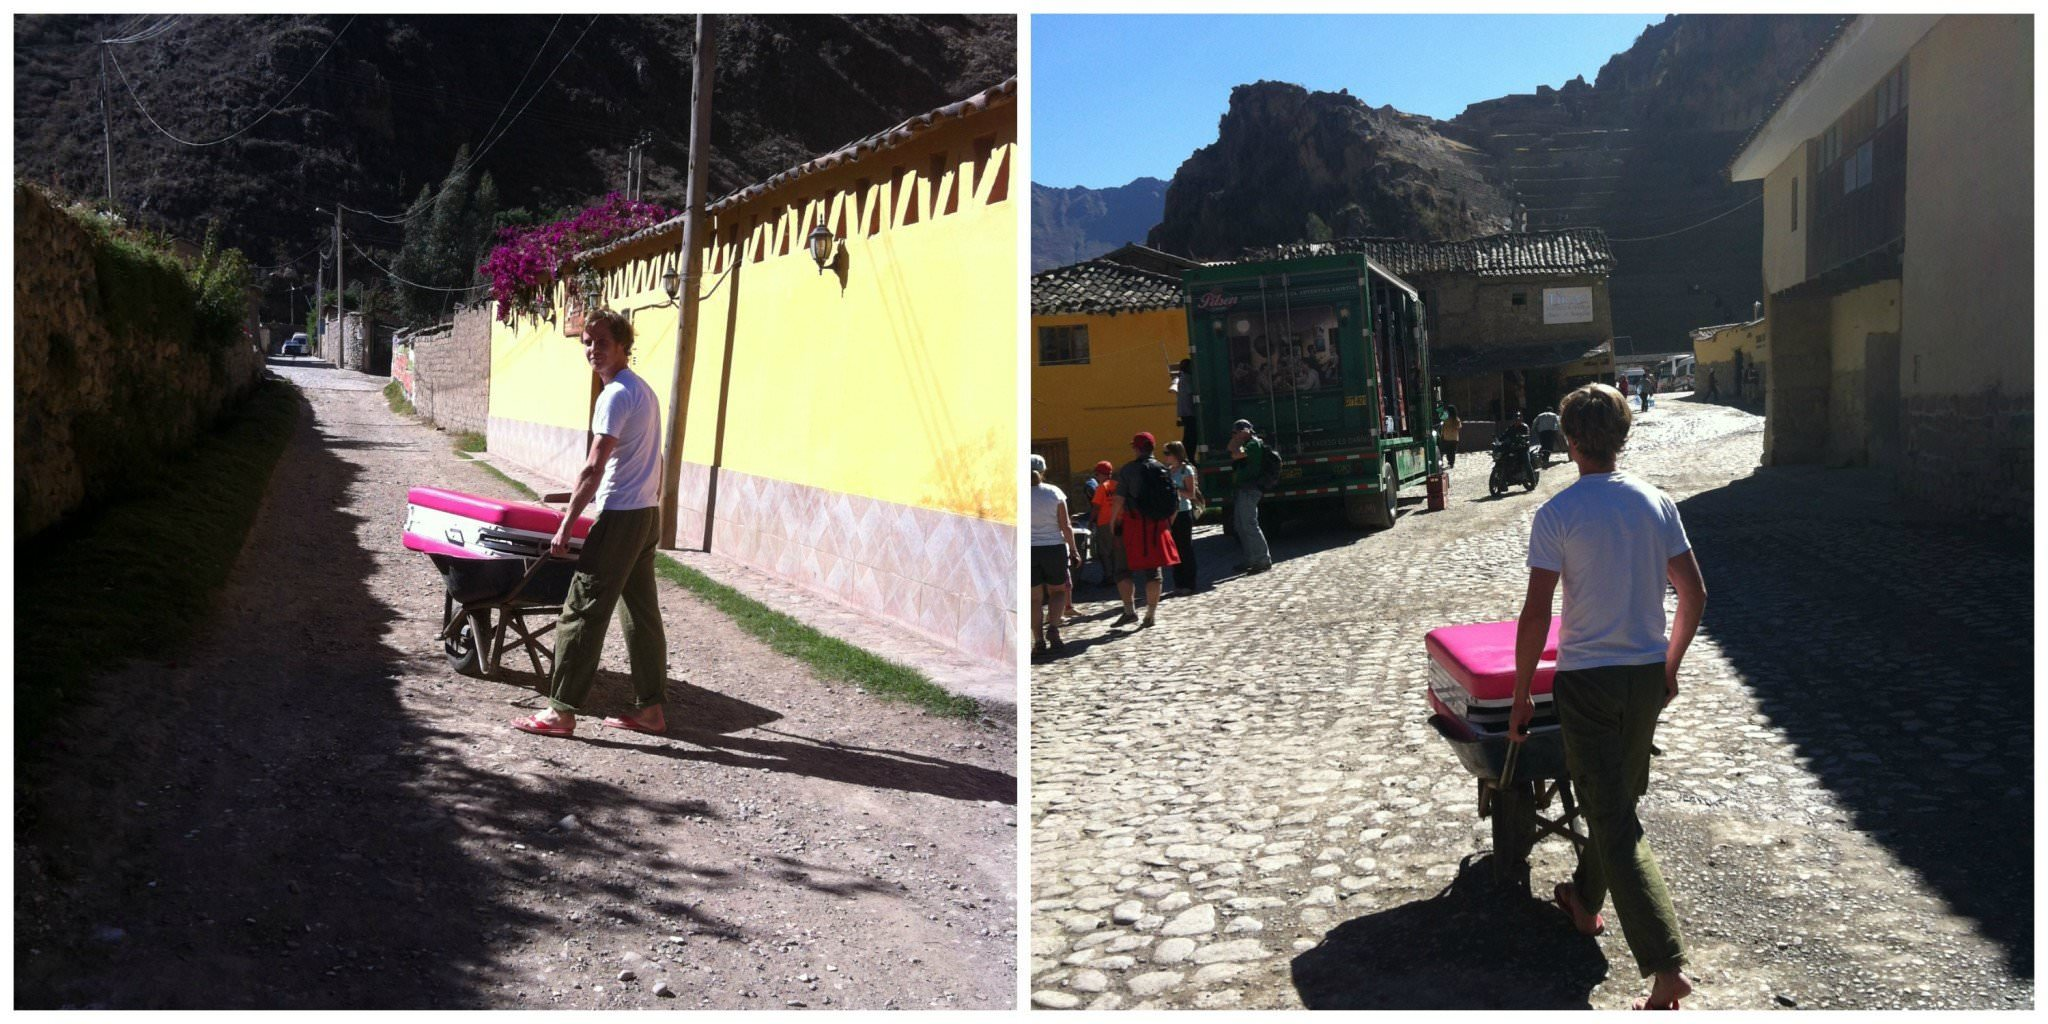 sustainable travel lifestyle - Our massage business in Ollantaytambo, Peru